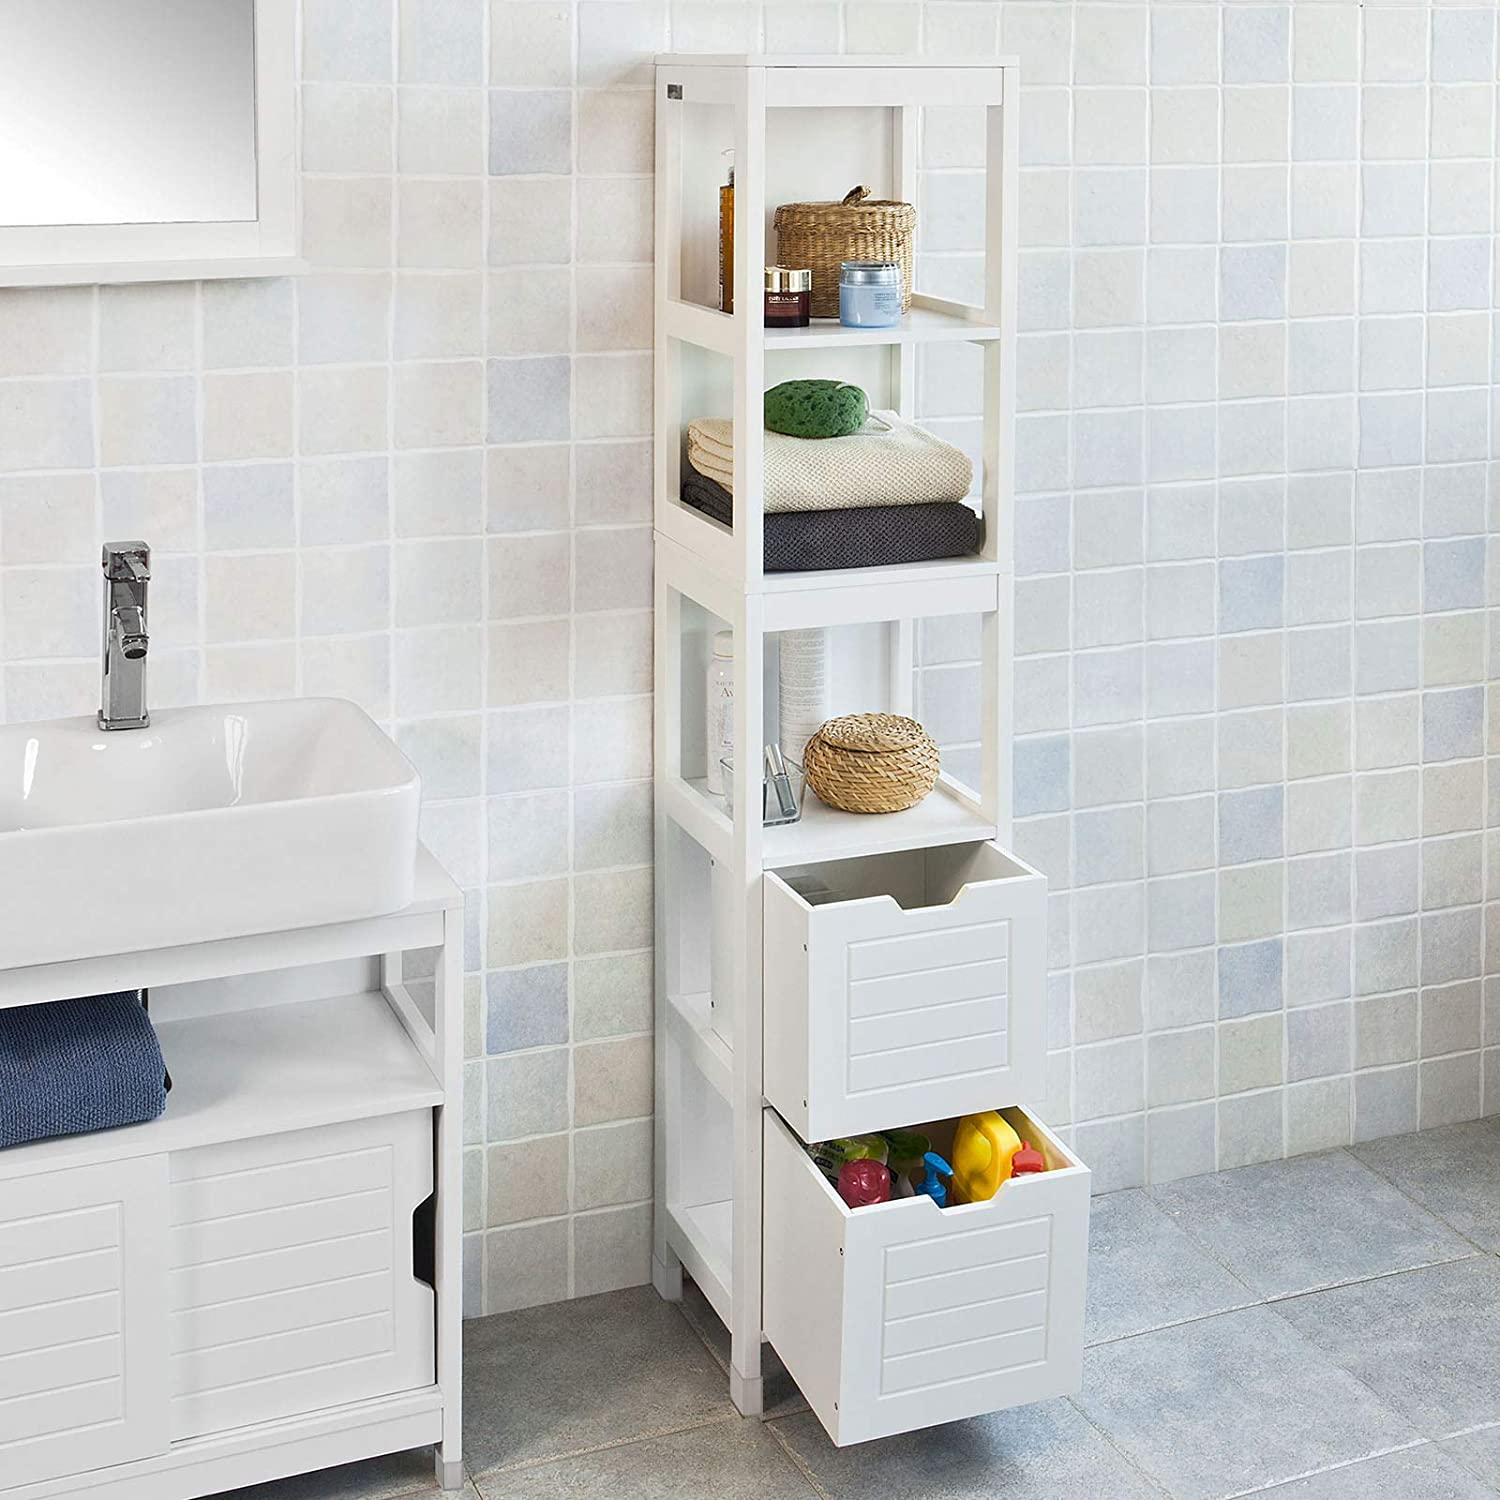 SoBuy® FRG126-W, White Tall Bathroom Storage Cabinet with 3 Shelves and 2 Drawers Frg126-w